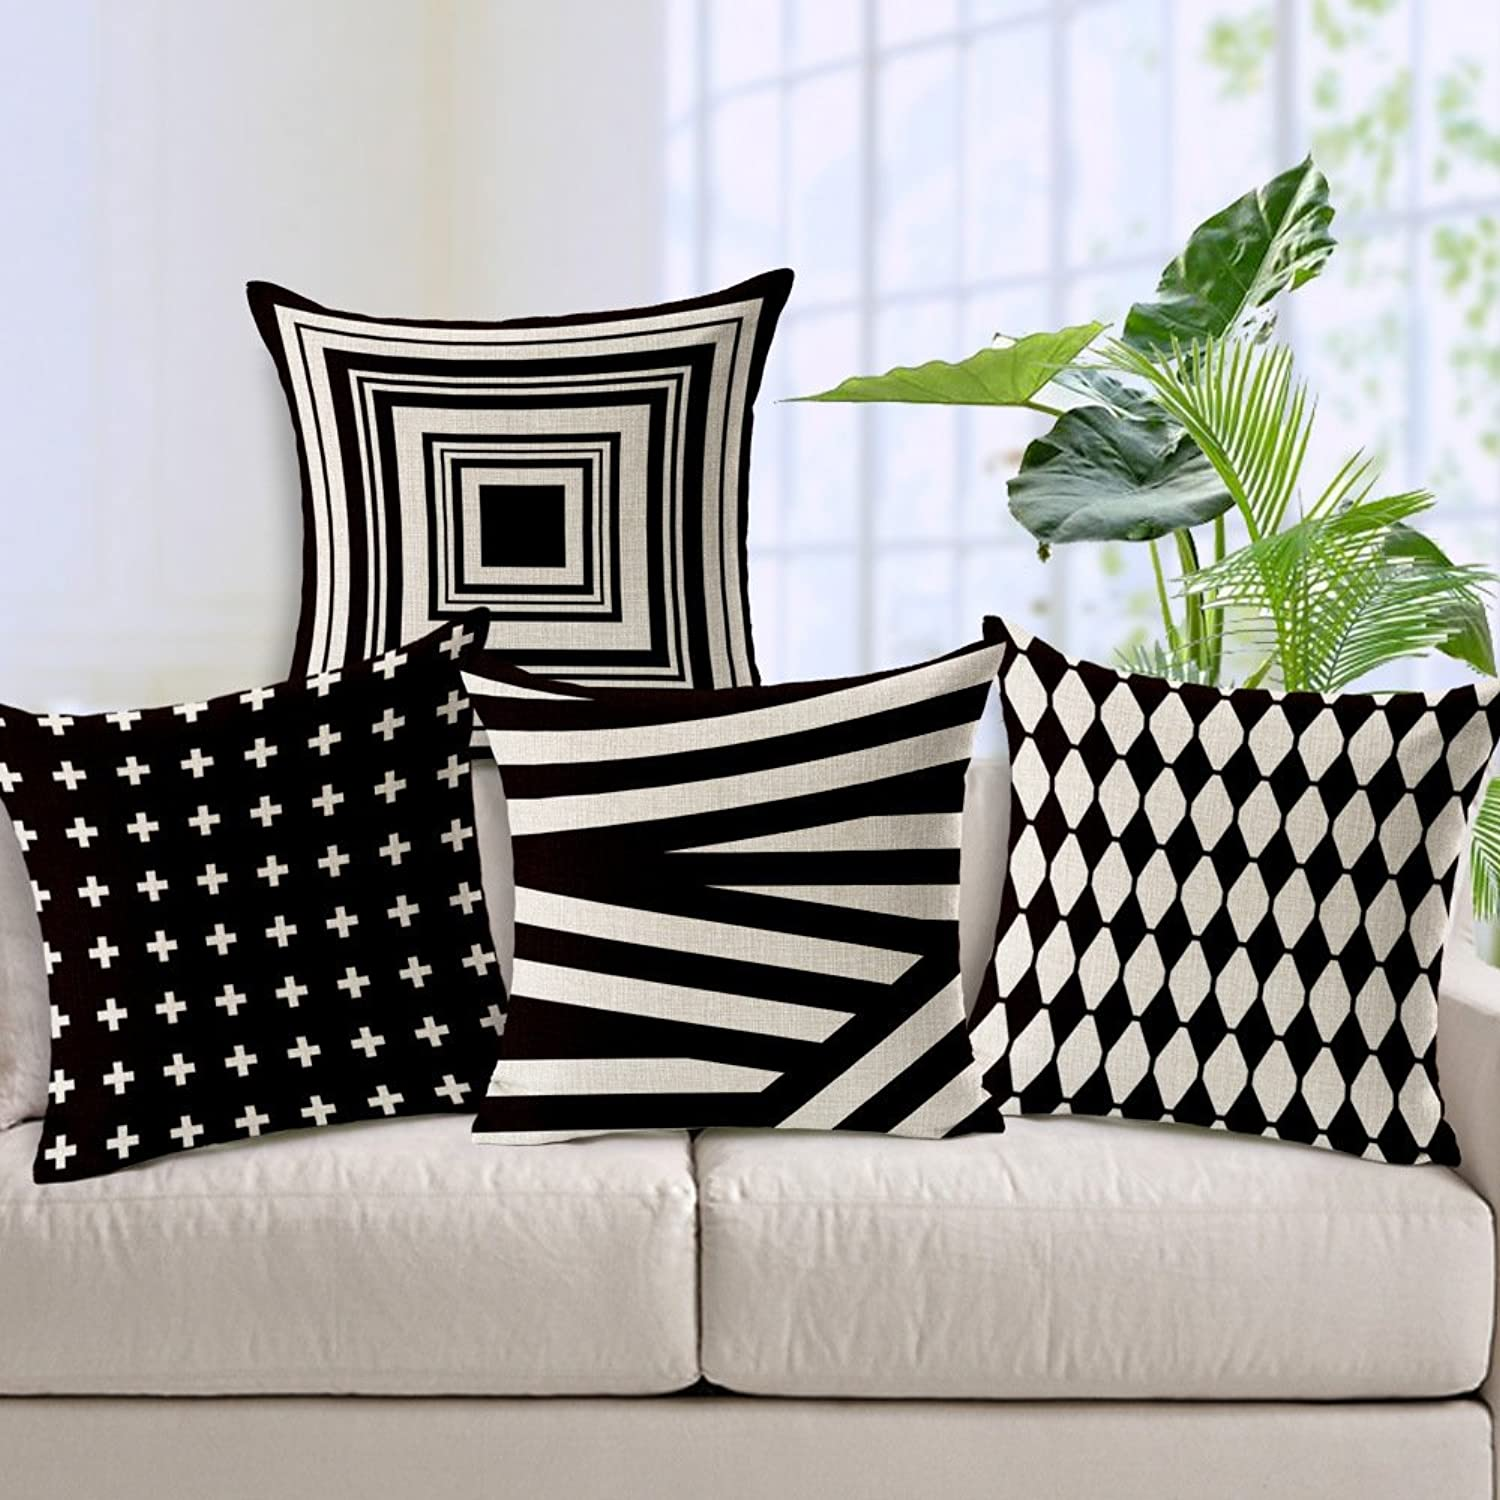 Great Fun Gift 4 Pcs Black and White Shading Geometric Soft Cotton Padded Cushion Cover